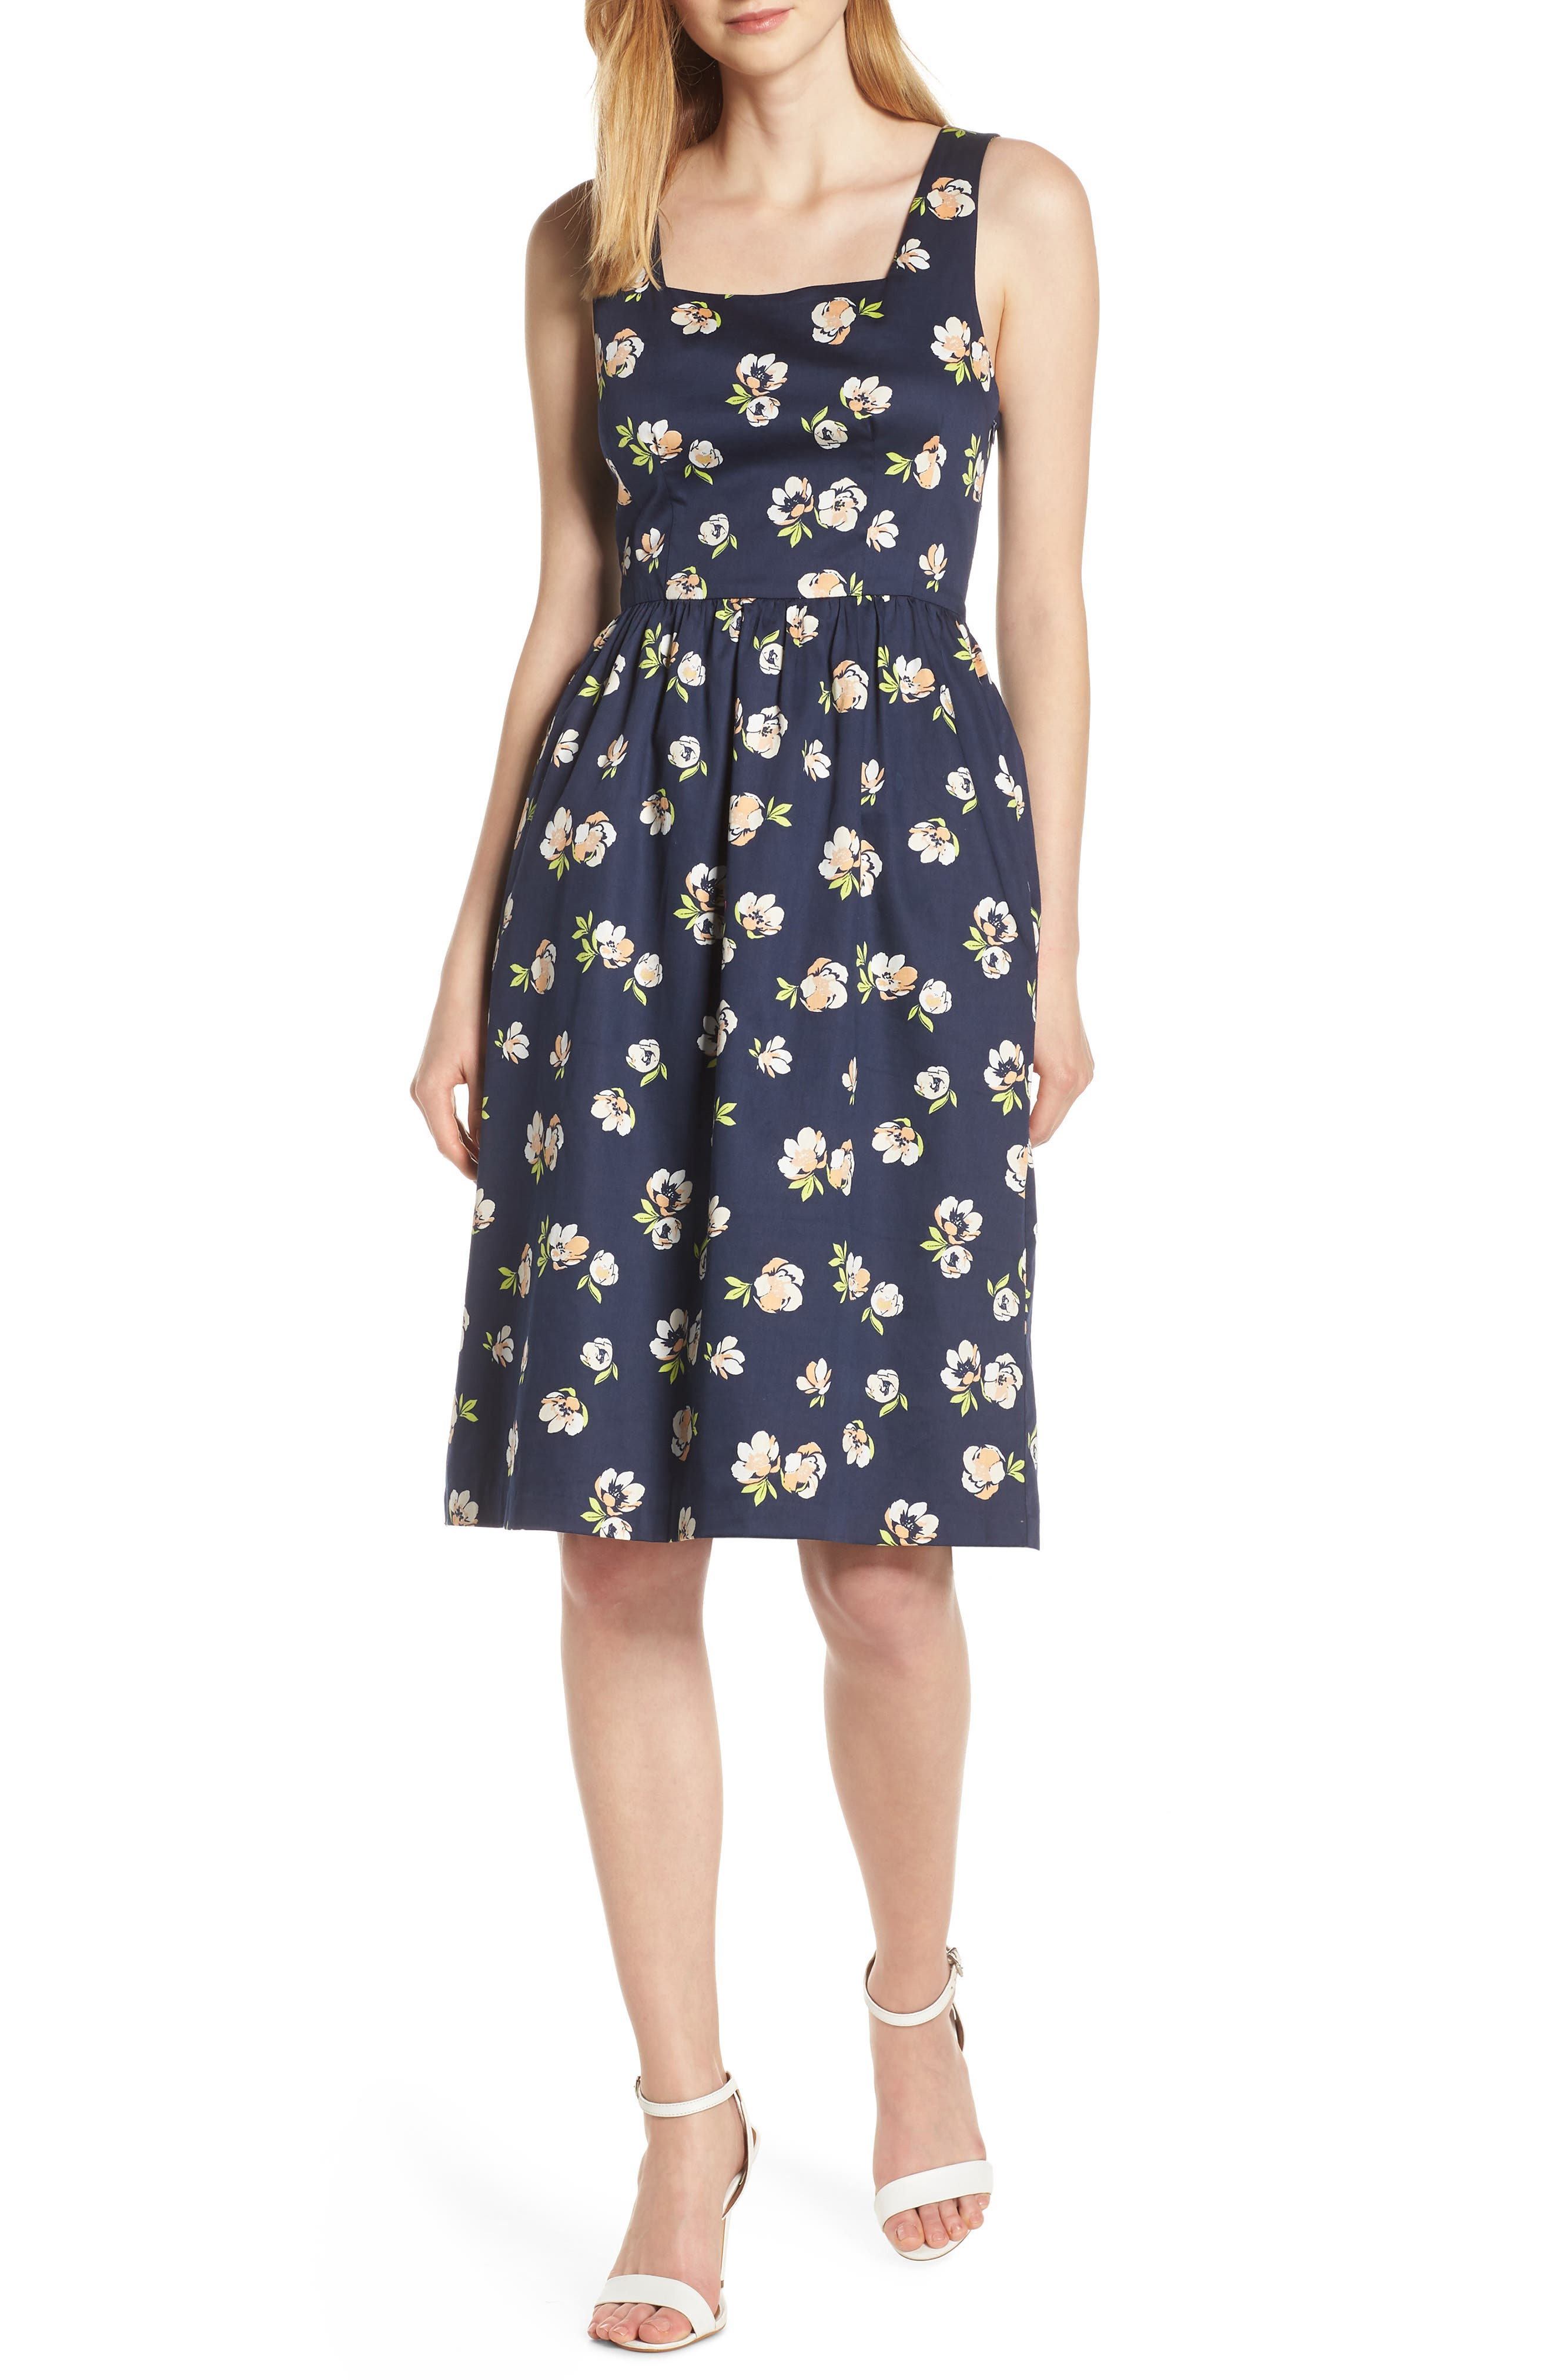 CHARLES HENRY Sleeveless Fit & Flare Dress, Main, color, NAVY PEACH FLORAL